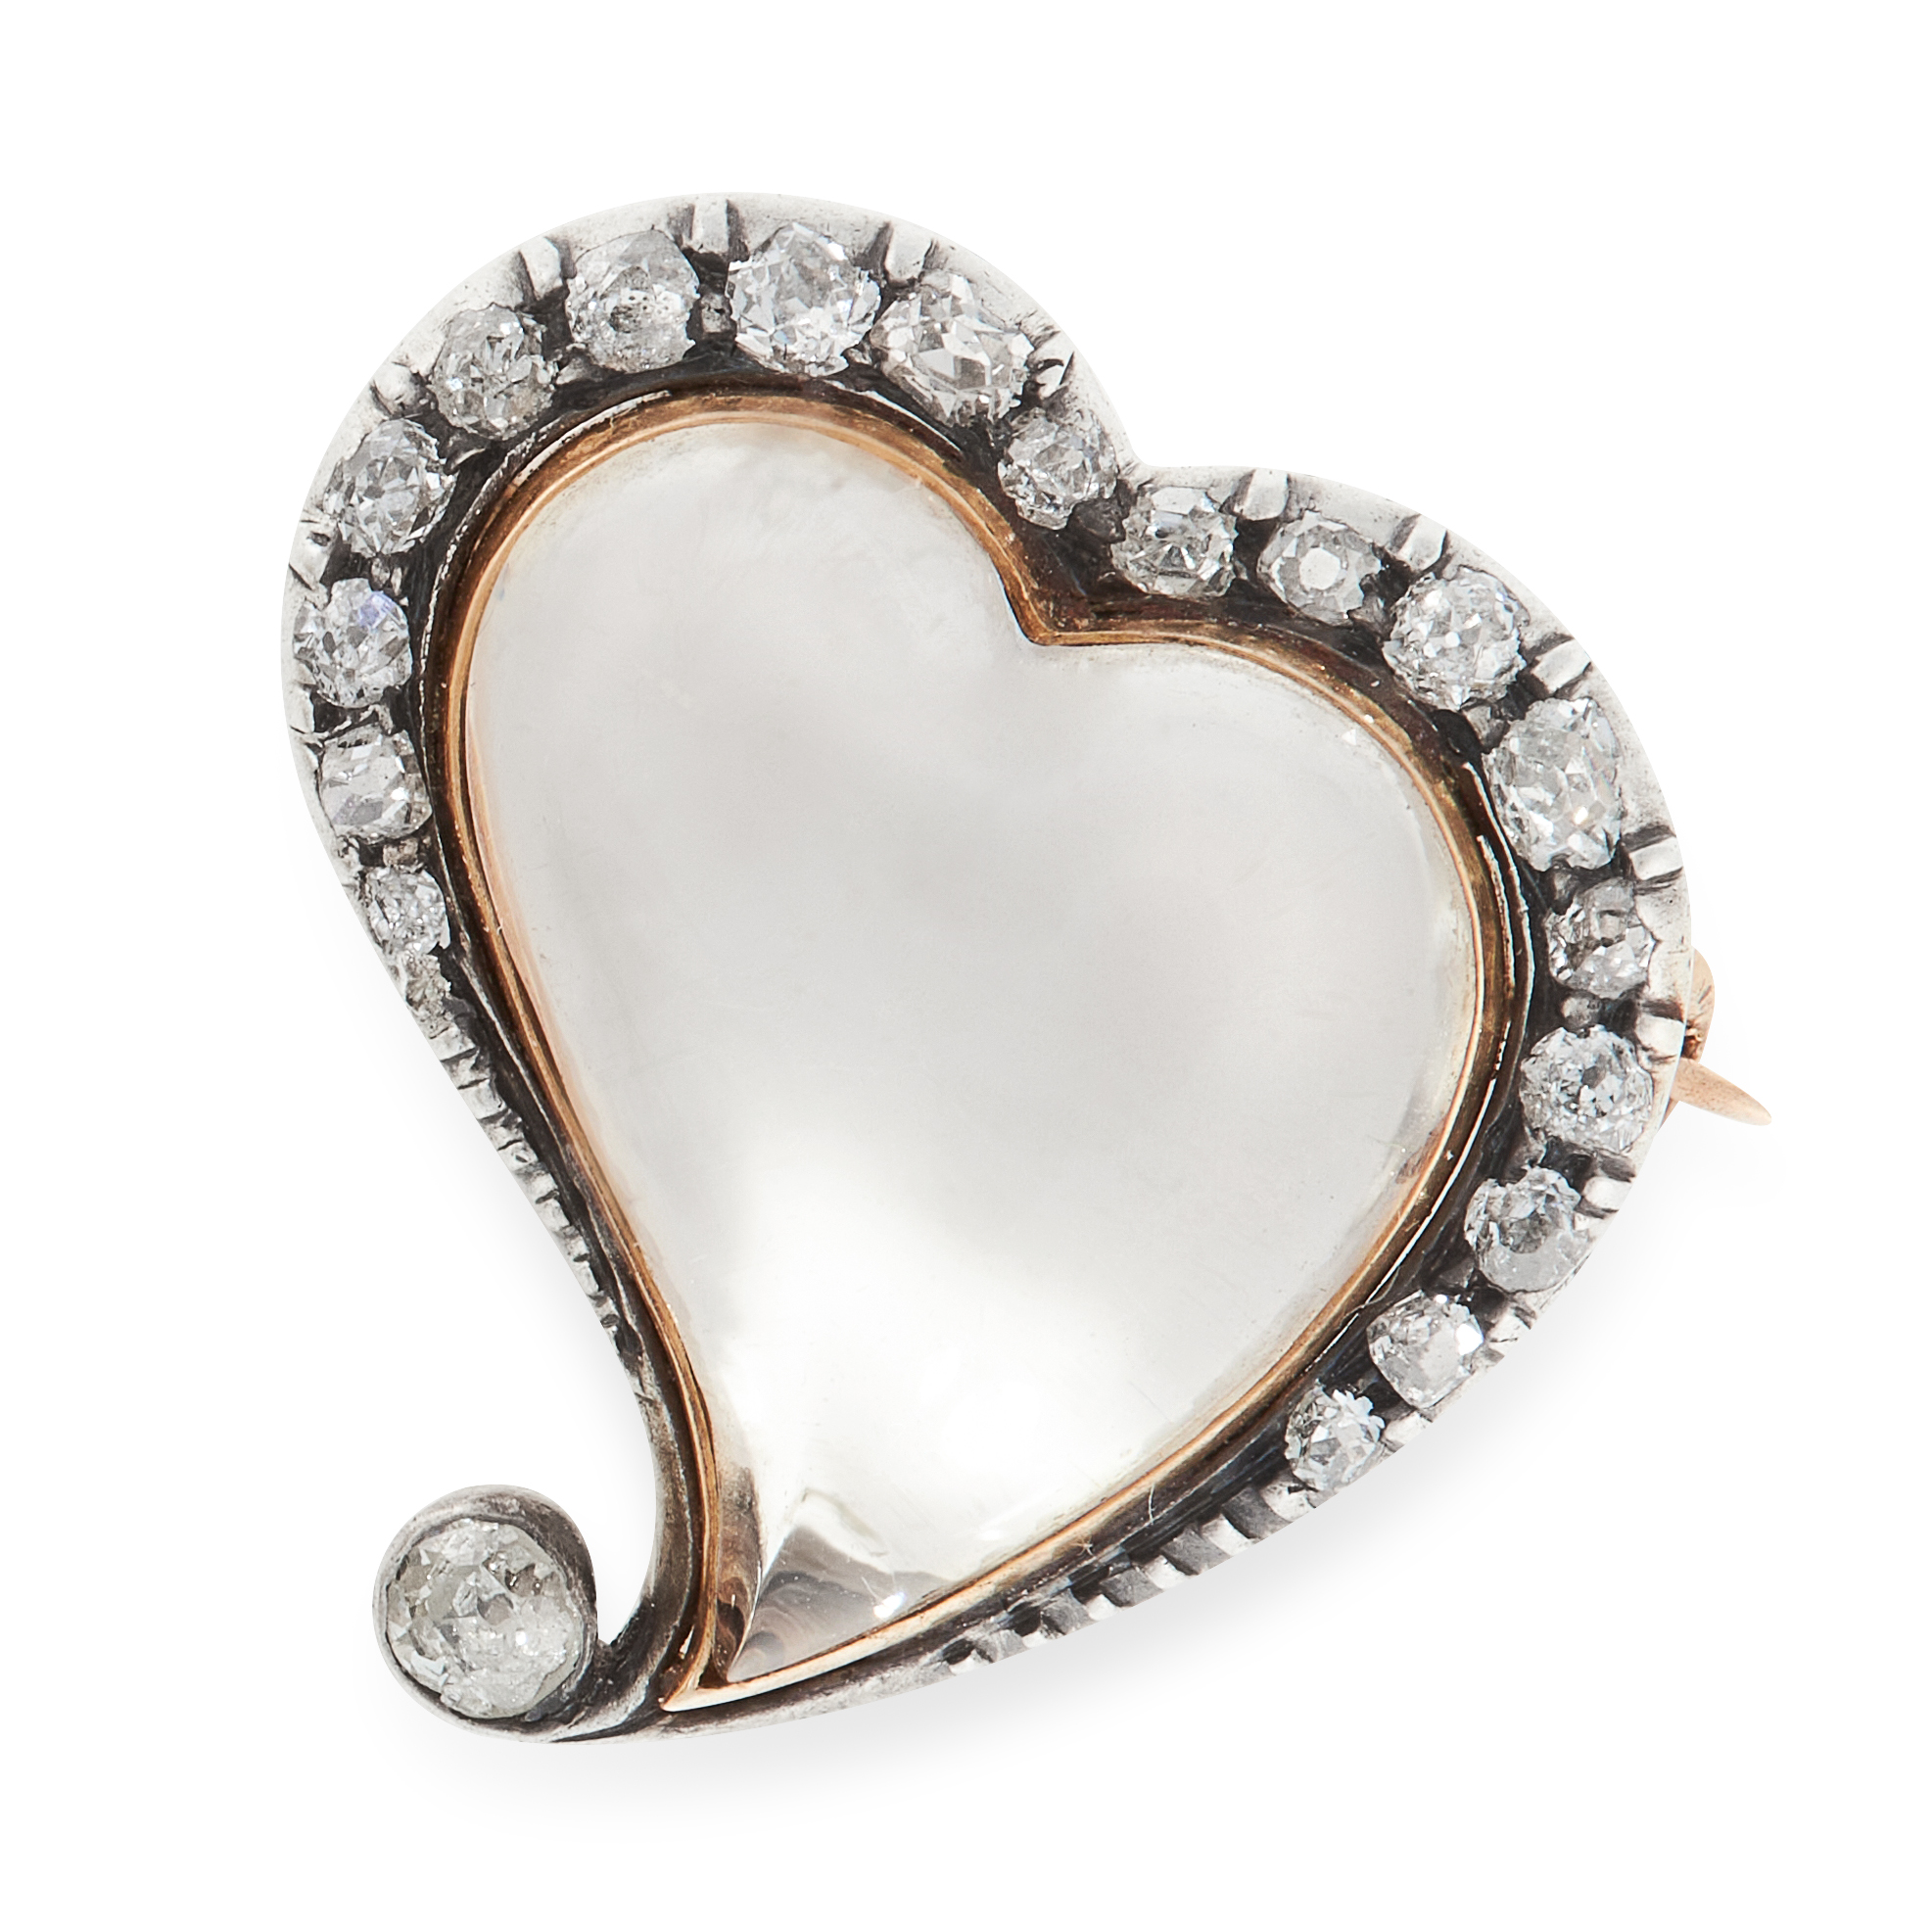 AN ANTIQUE ROCK CRYSTAL AND DIAMOND WITCH'S HEART BROOCH, 19TH CENTURY in yellow gold and silver, - Image 2 of 2